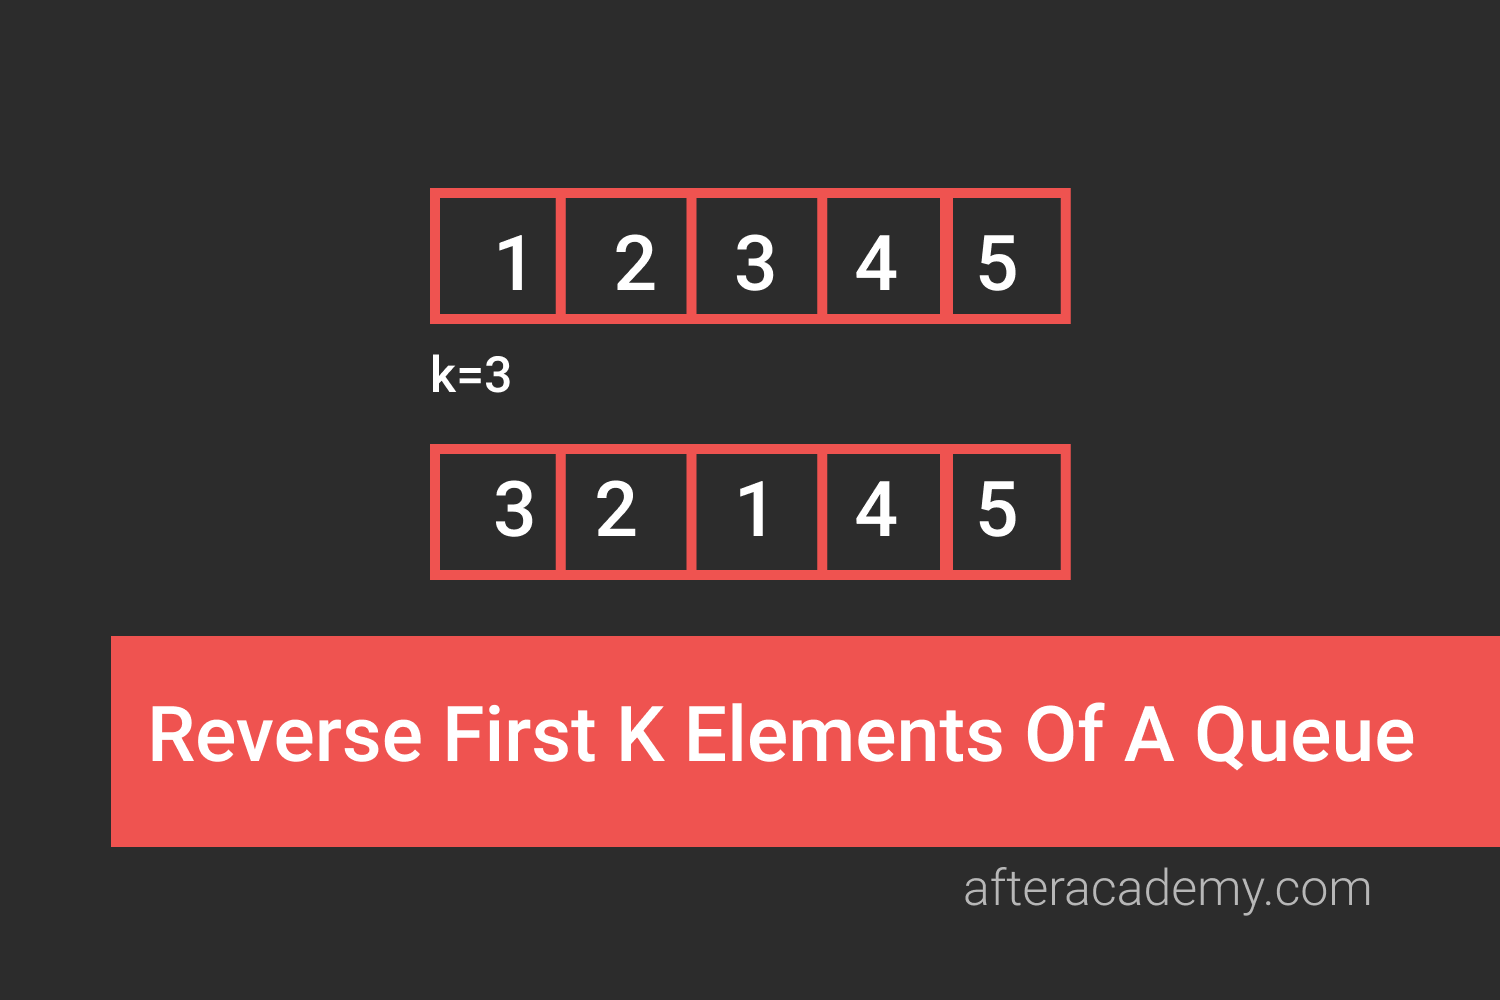 Reverse First K Elements Of A Queue